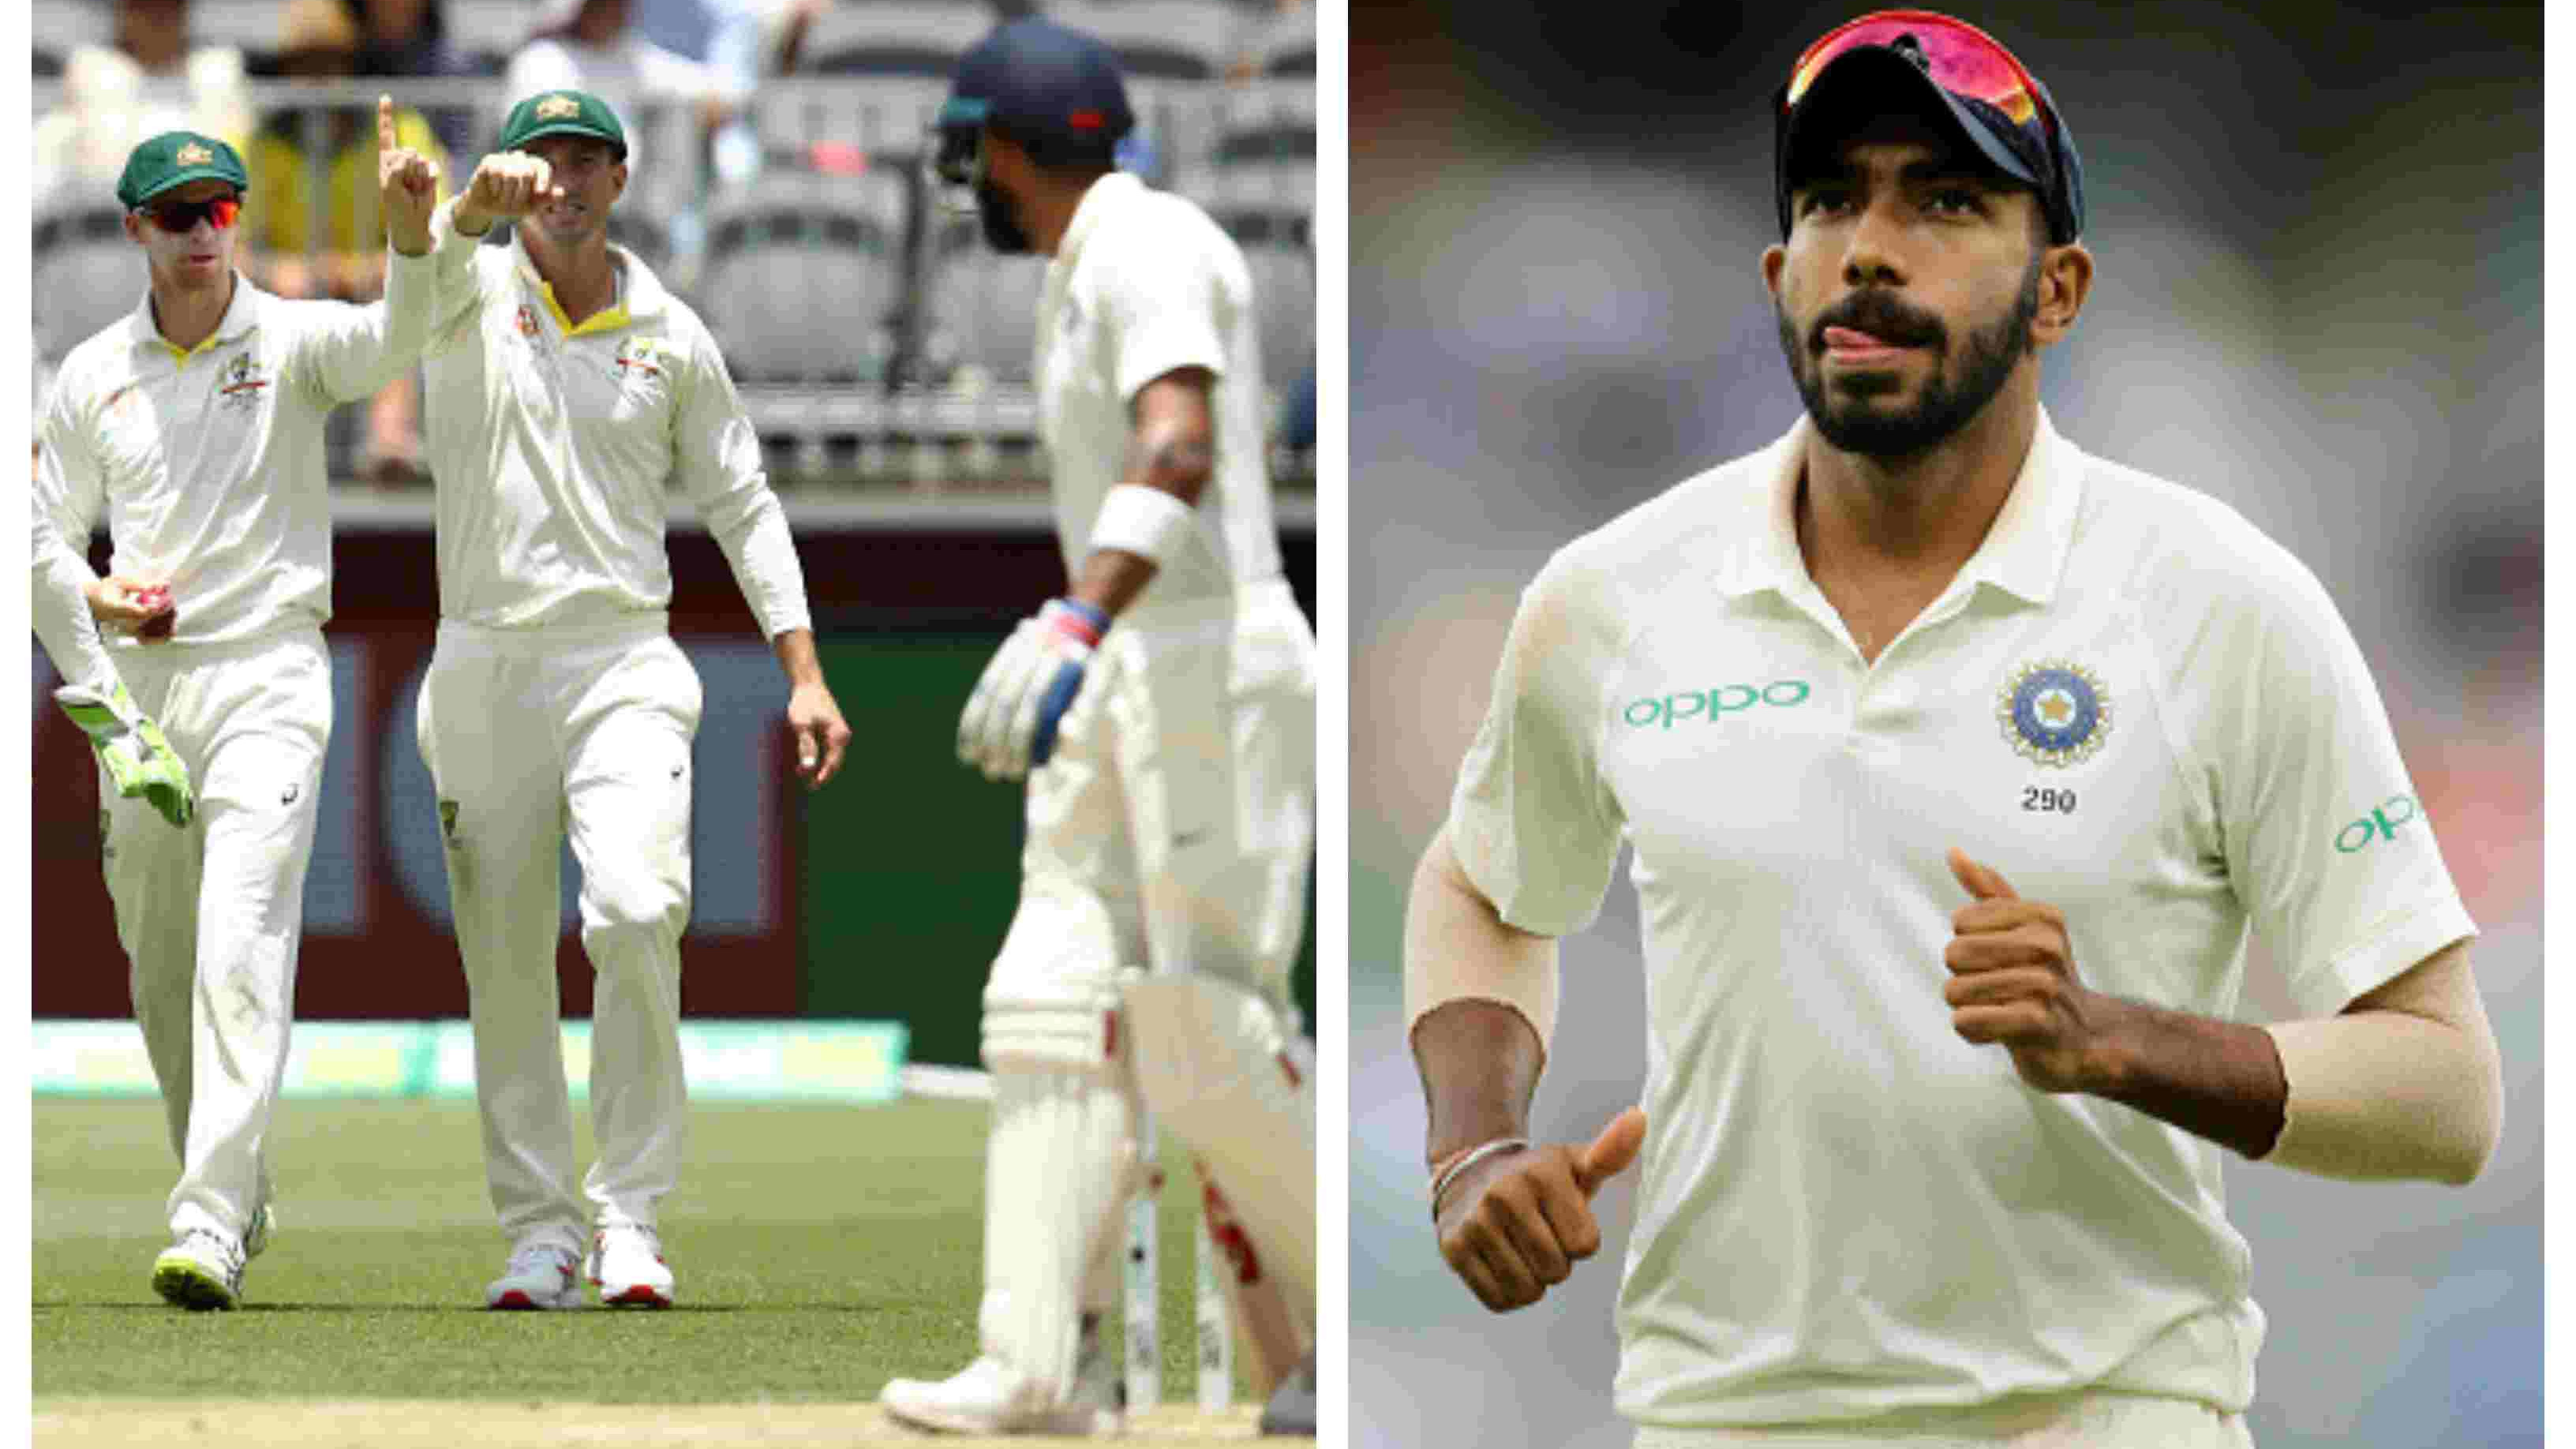 AUS v IND 2018-19: We were 'surprised' at the on-field umpire's call in Kohli's dismissal, says Jasprit Bumrah